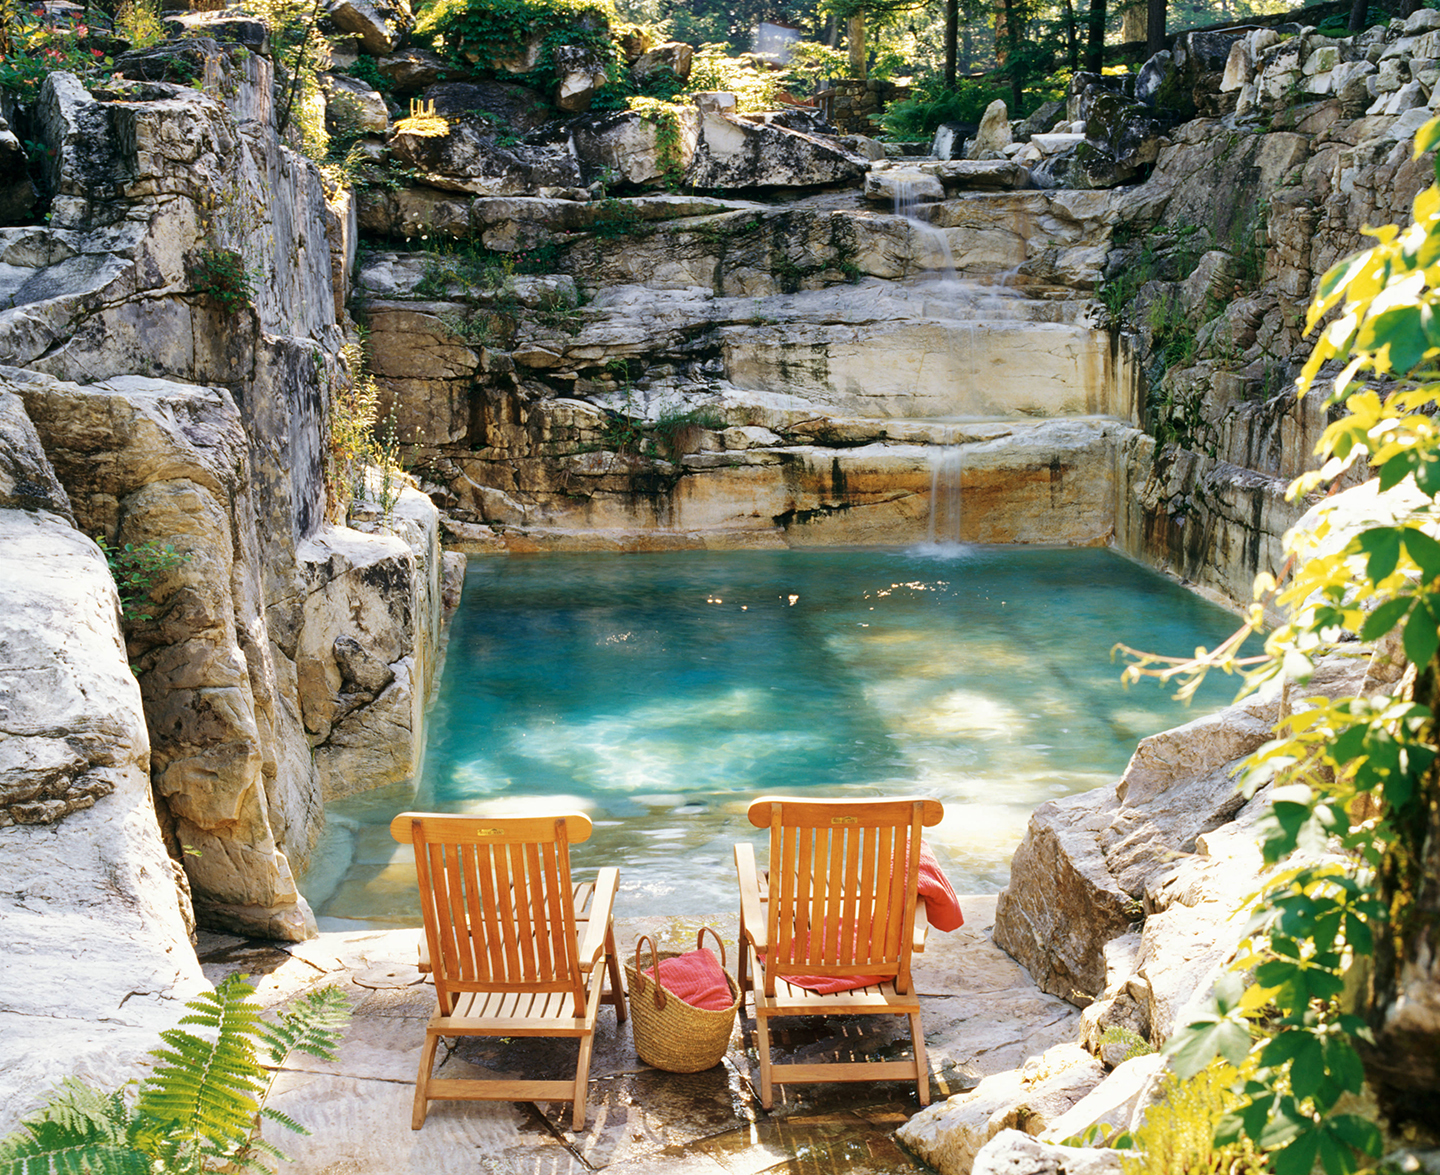 Backyard Quarry Swimming Pool Luxury Estate Massachusetts 2